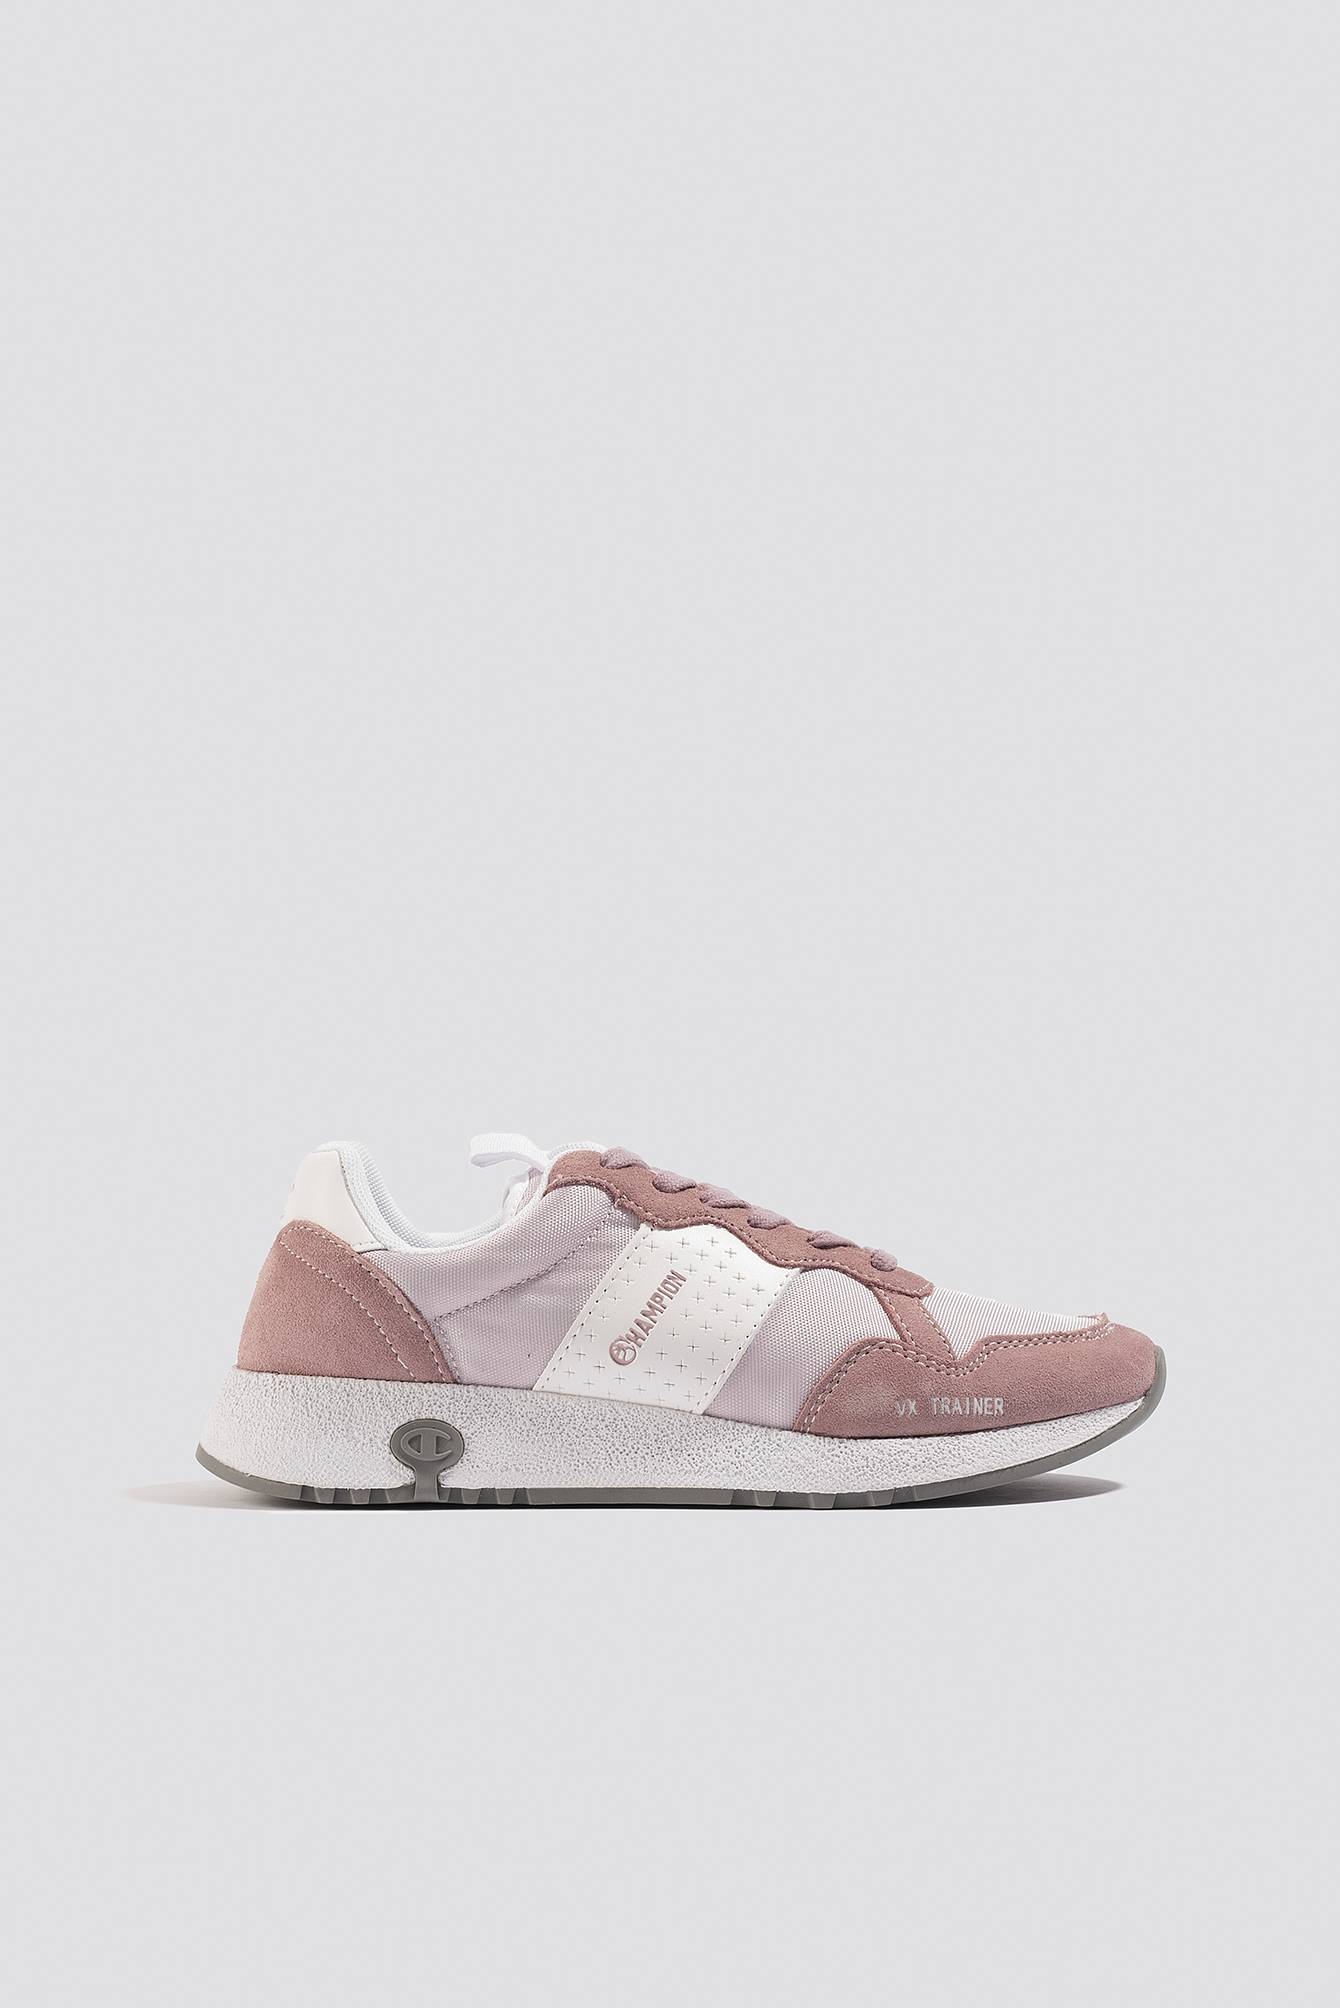 Champion VX Trainer Low Cut Sneaker - Pink